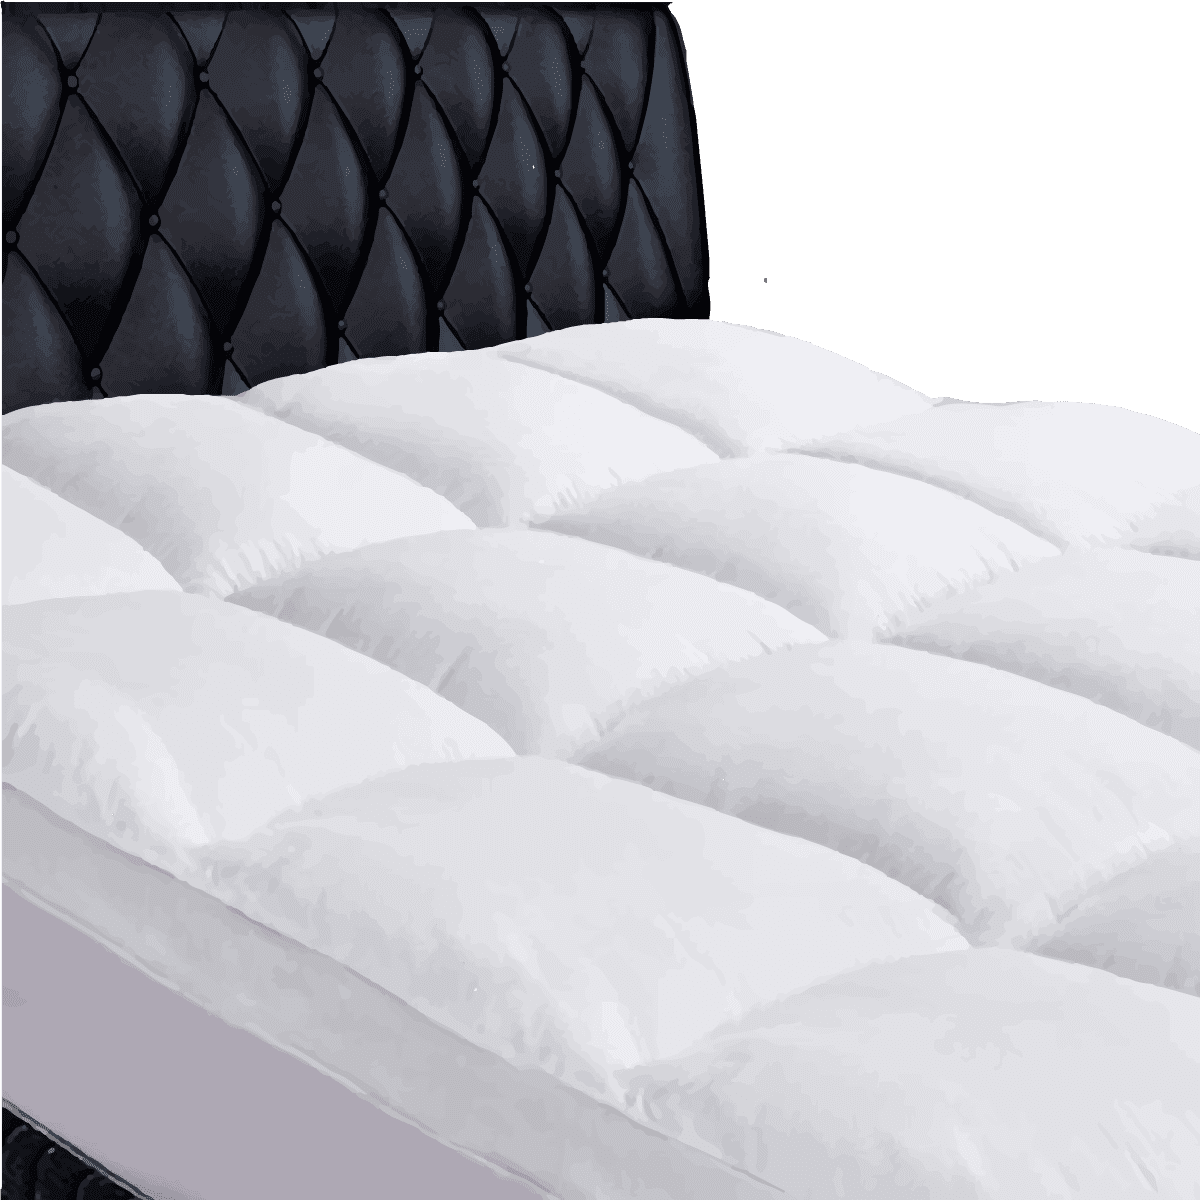 COONP-Queen-Mattress-Topper,-Extra-Thick-Mattress-Pad-Cover,-Cooling-Cotton-Pillowtop-400TC-Plush-Top-with-8-21-Inch-Deep-Pocket